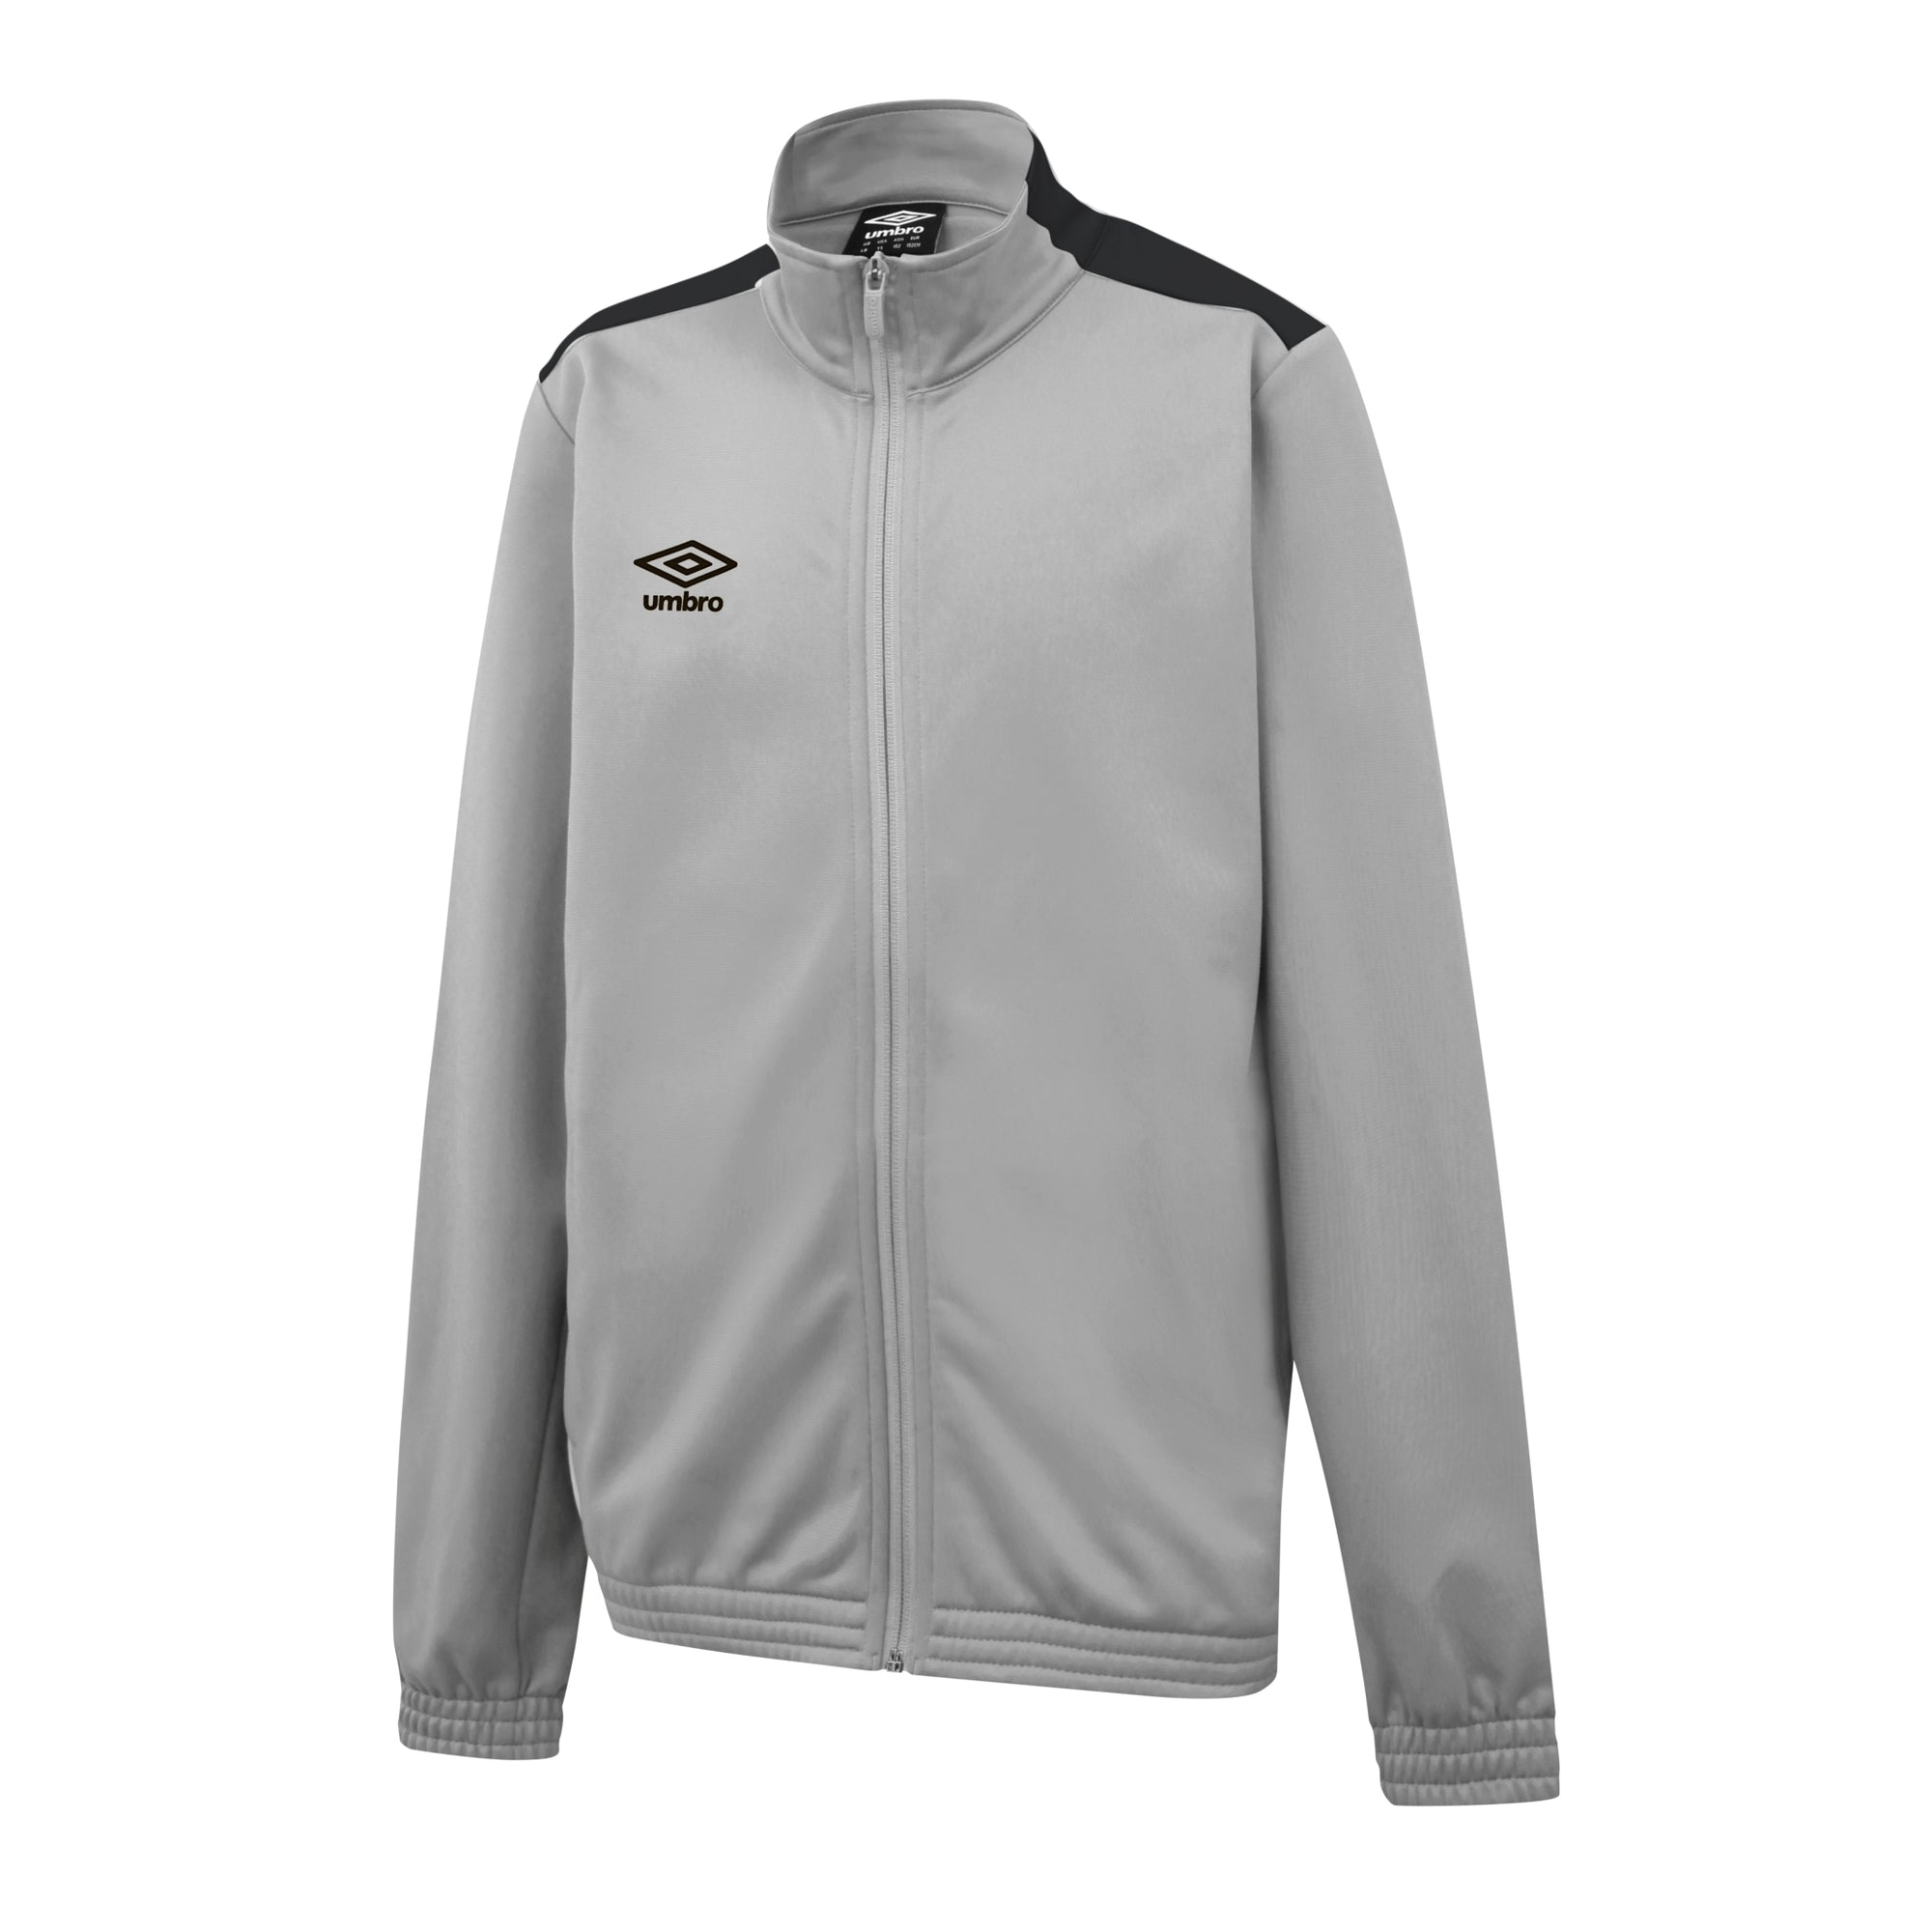 Umbro Training Knitted Jacket - High Rise/Carbon